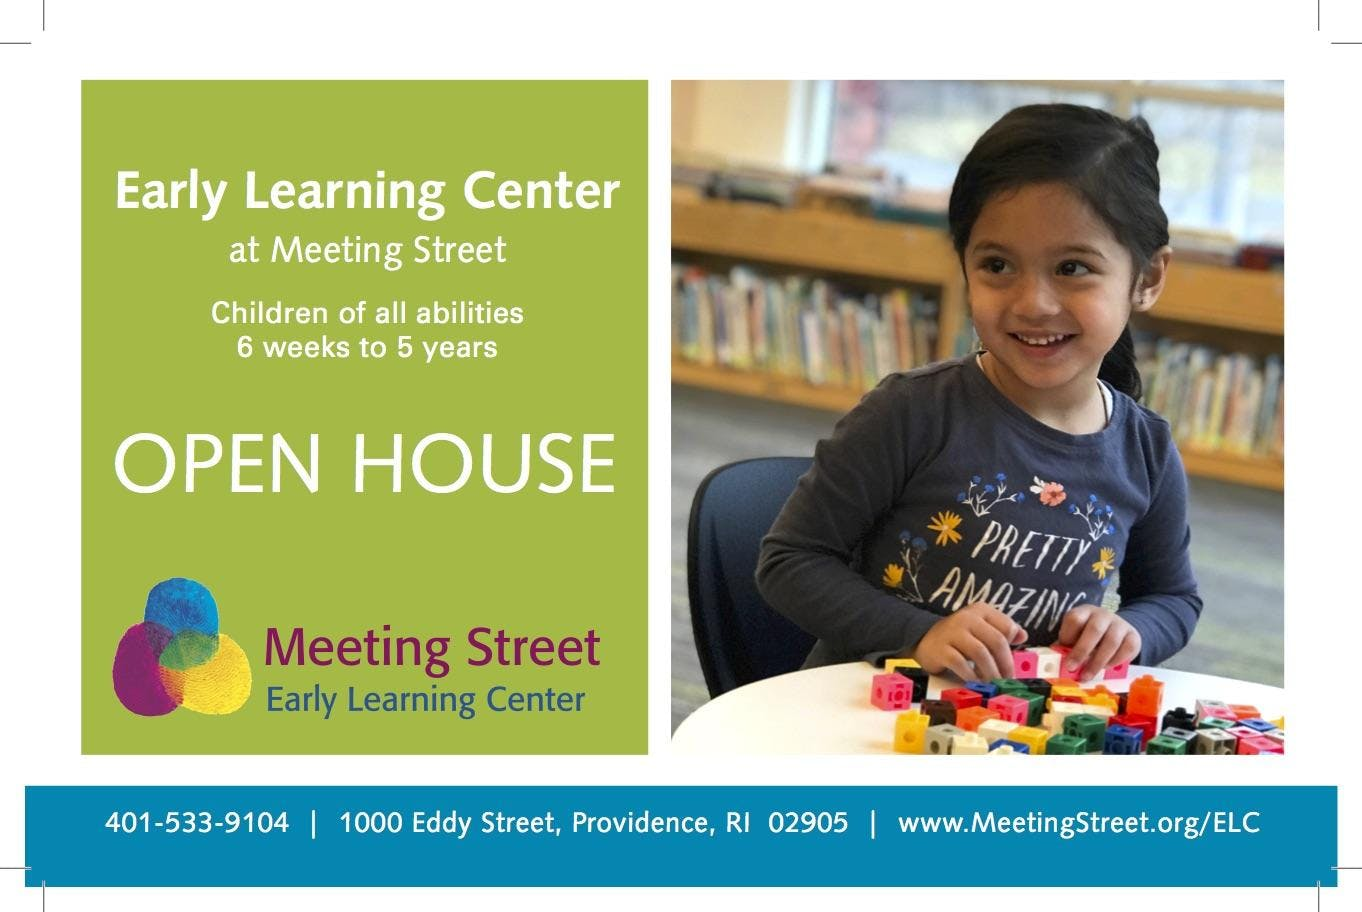 The Early Learning Center at Meeting Street OPEN HOUSE